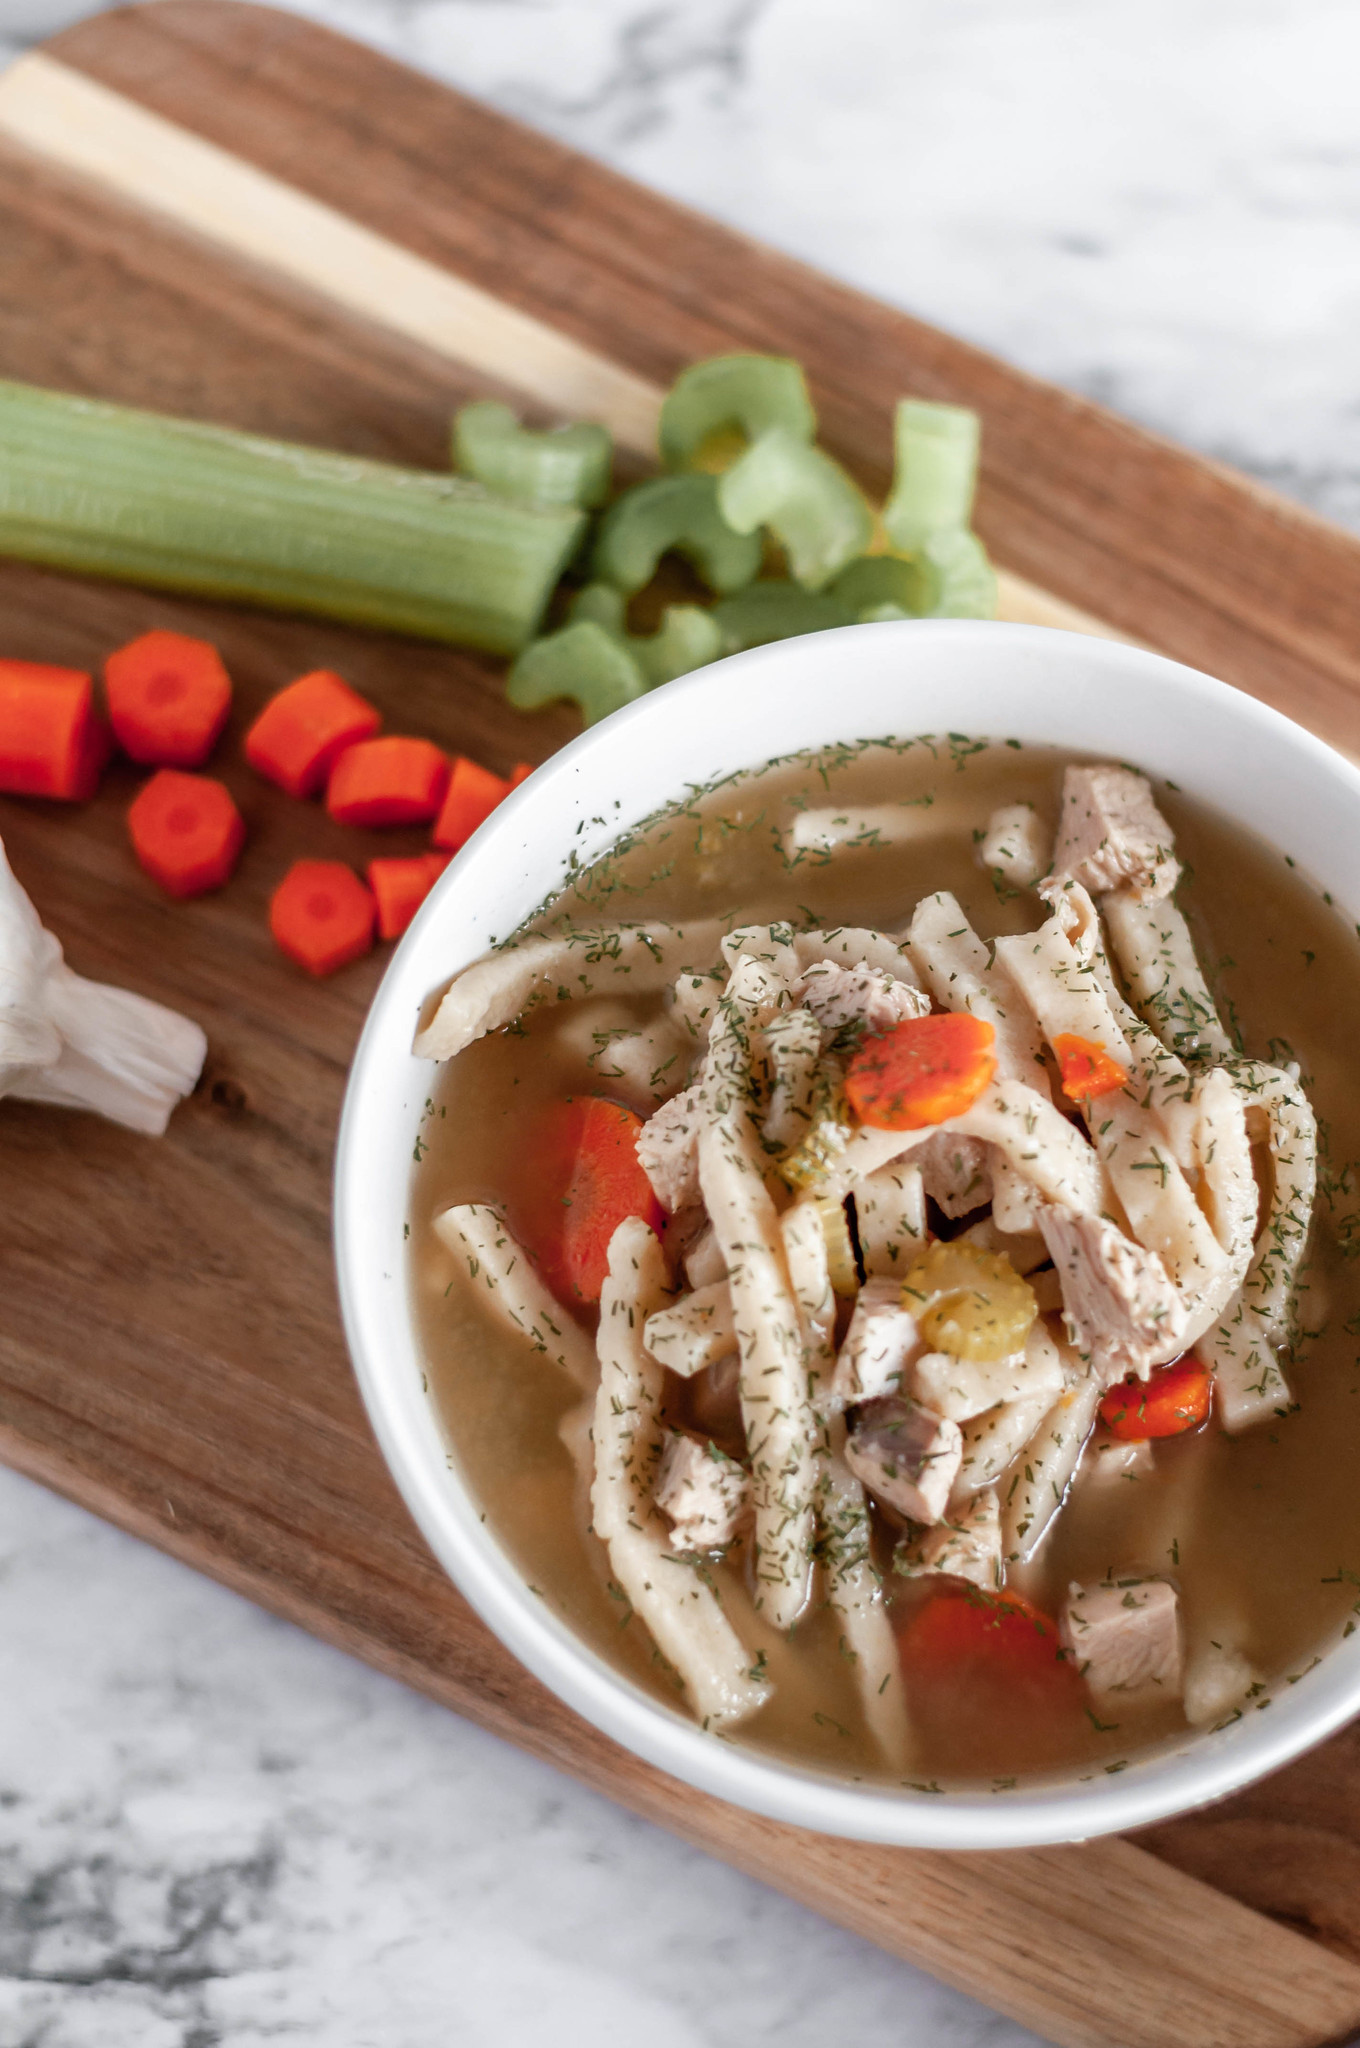 Instant Pot Turkey Noodle Soup uses your leftover turkey from Thanksgiving to make a hearty, flavorful soup in the Instant Pot.